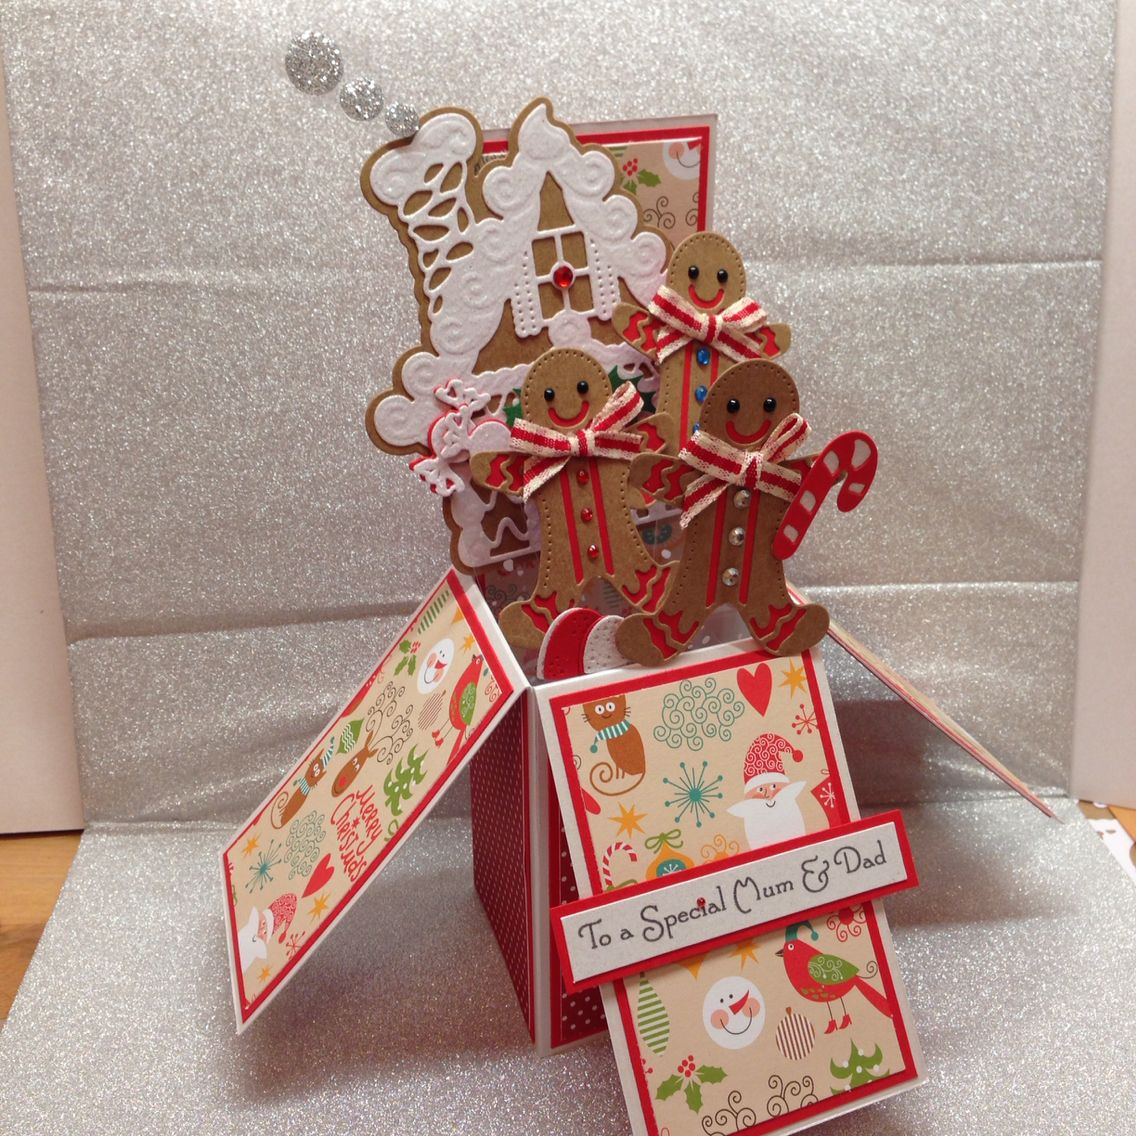 Gingerbread House Pop Up Card, Using Tonic Gingerbread Man